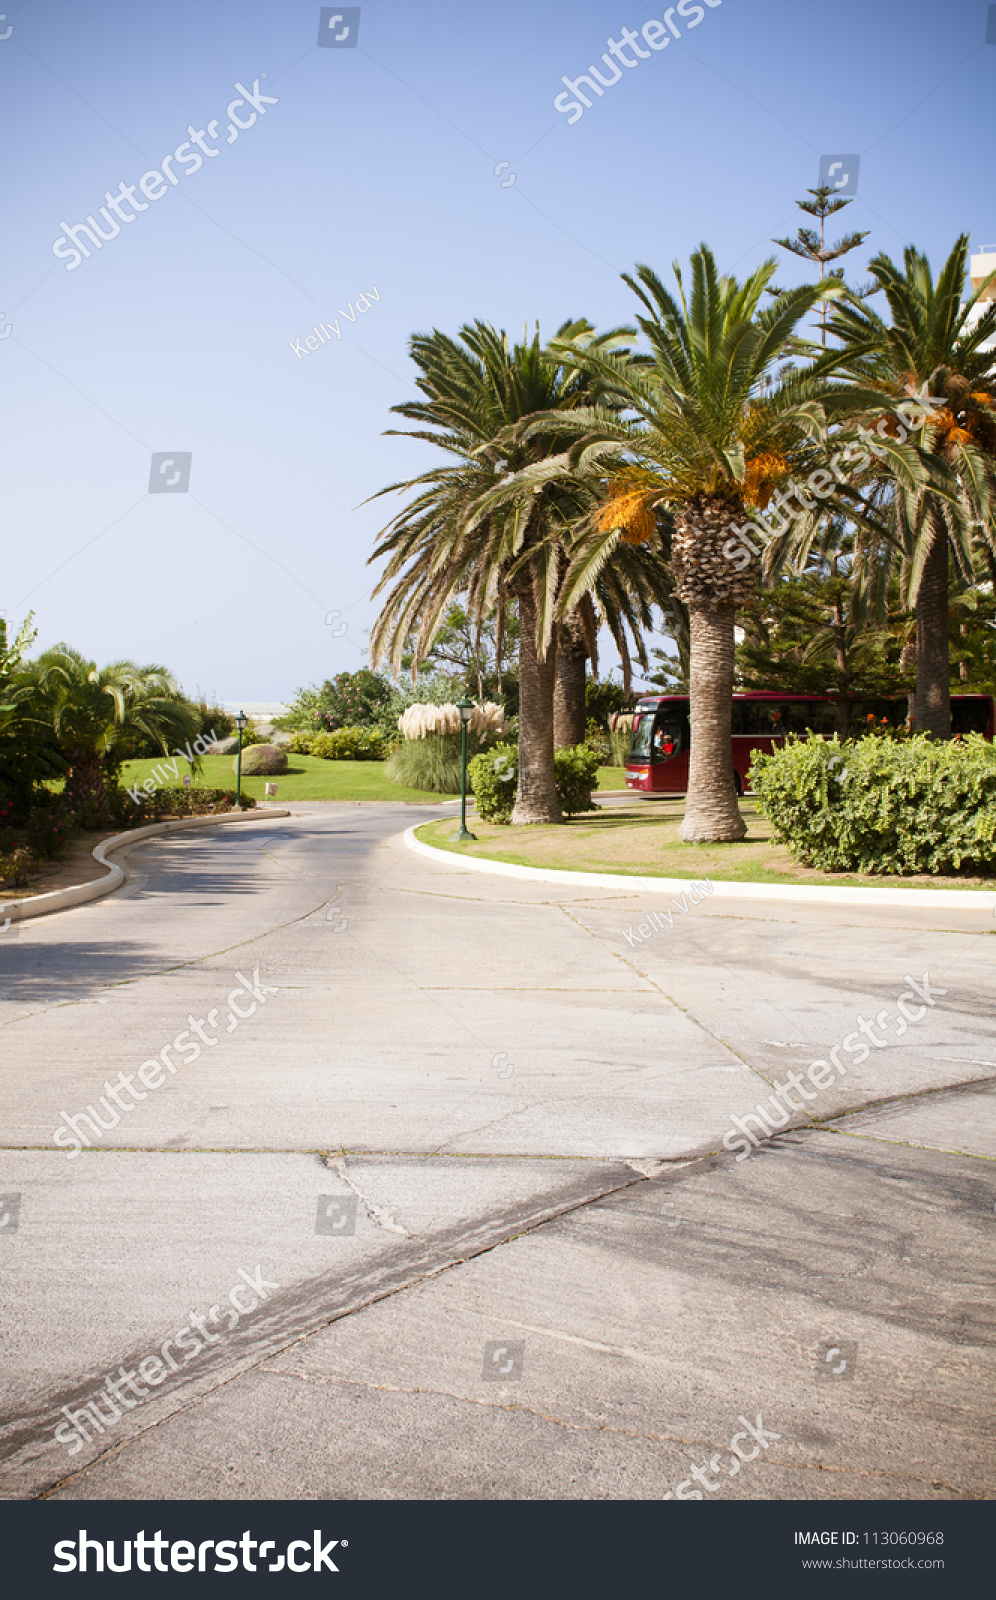 driveway with palm trees ez canvas